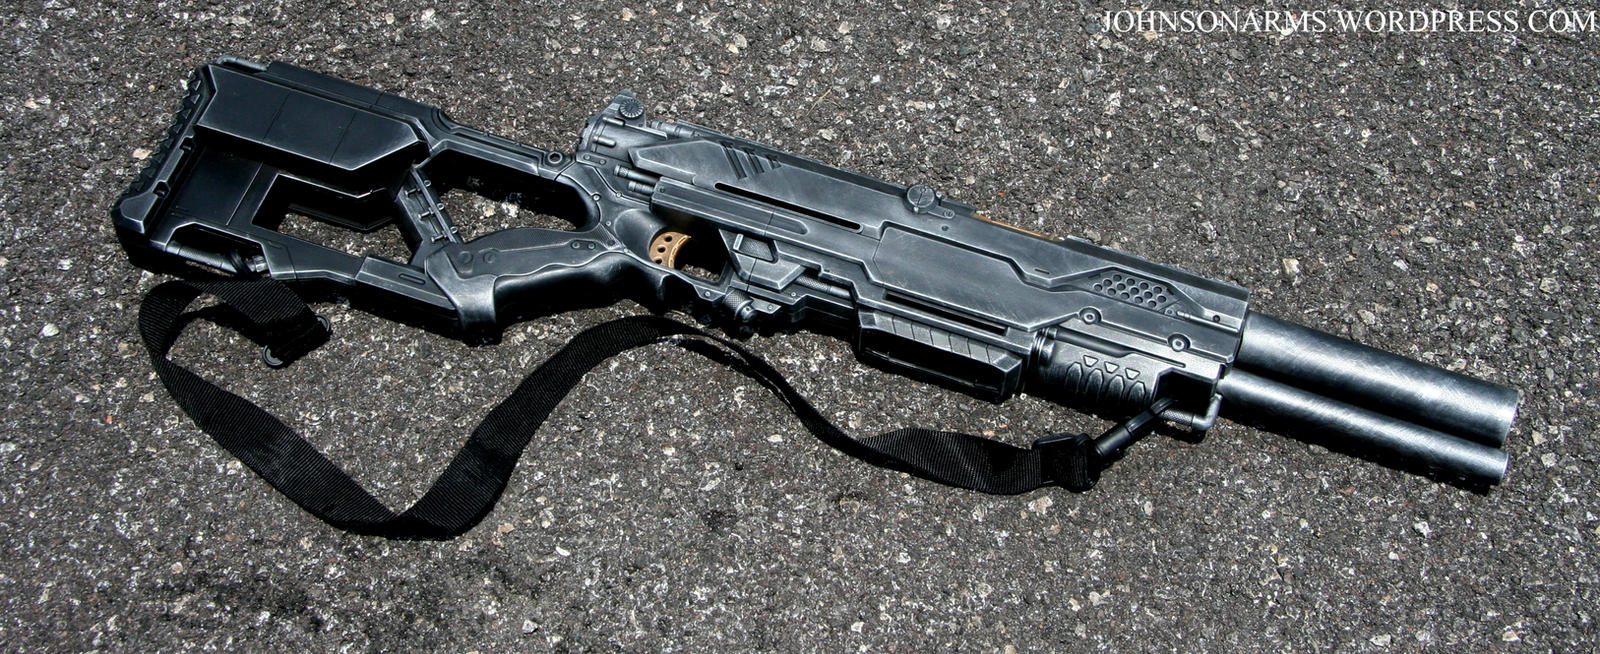 WarHammer 40k Long Las prop 2 by JohnsonArms